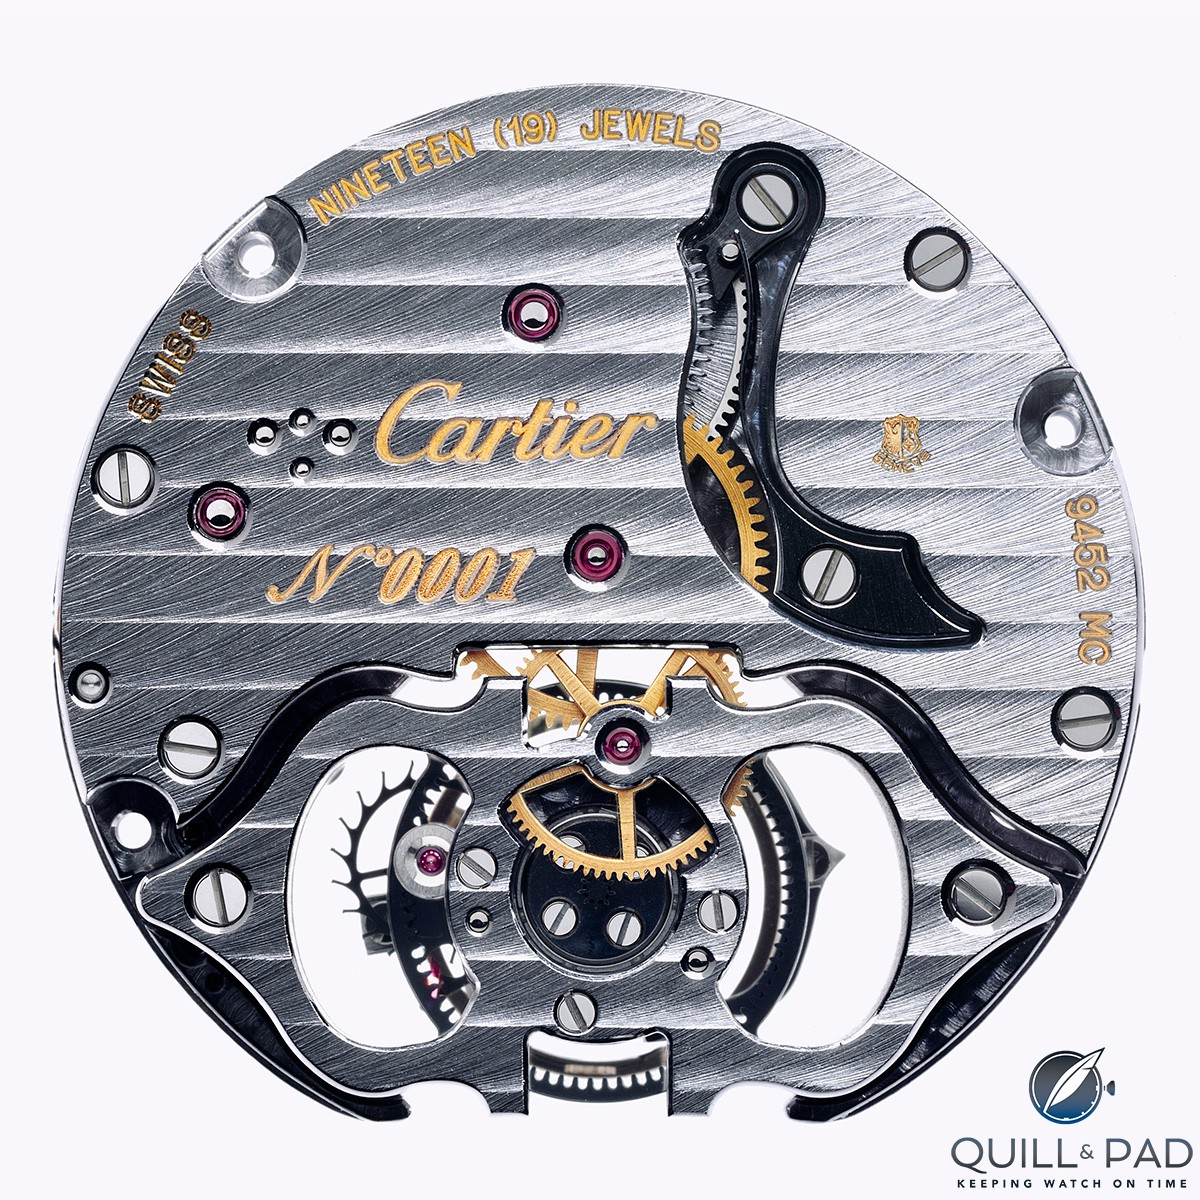 The Geneva Seal is visible at 2 o'clock on this Cartier movement